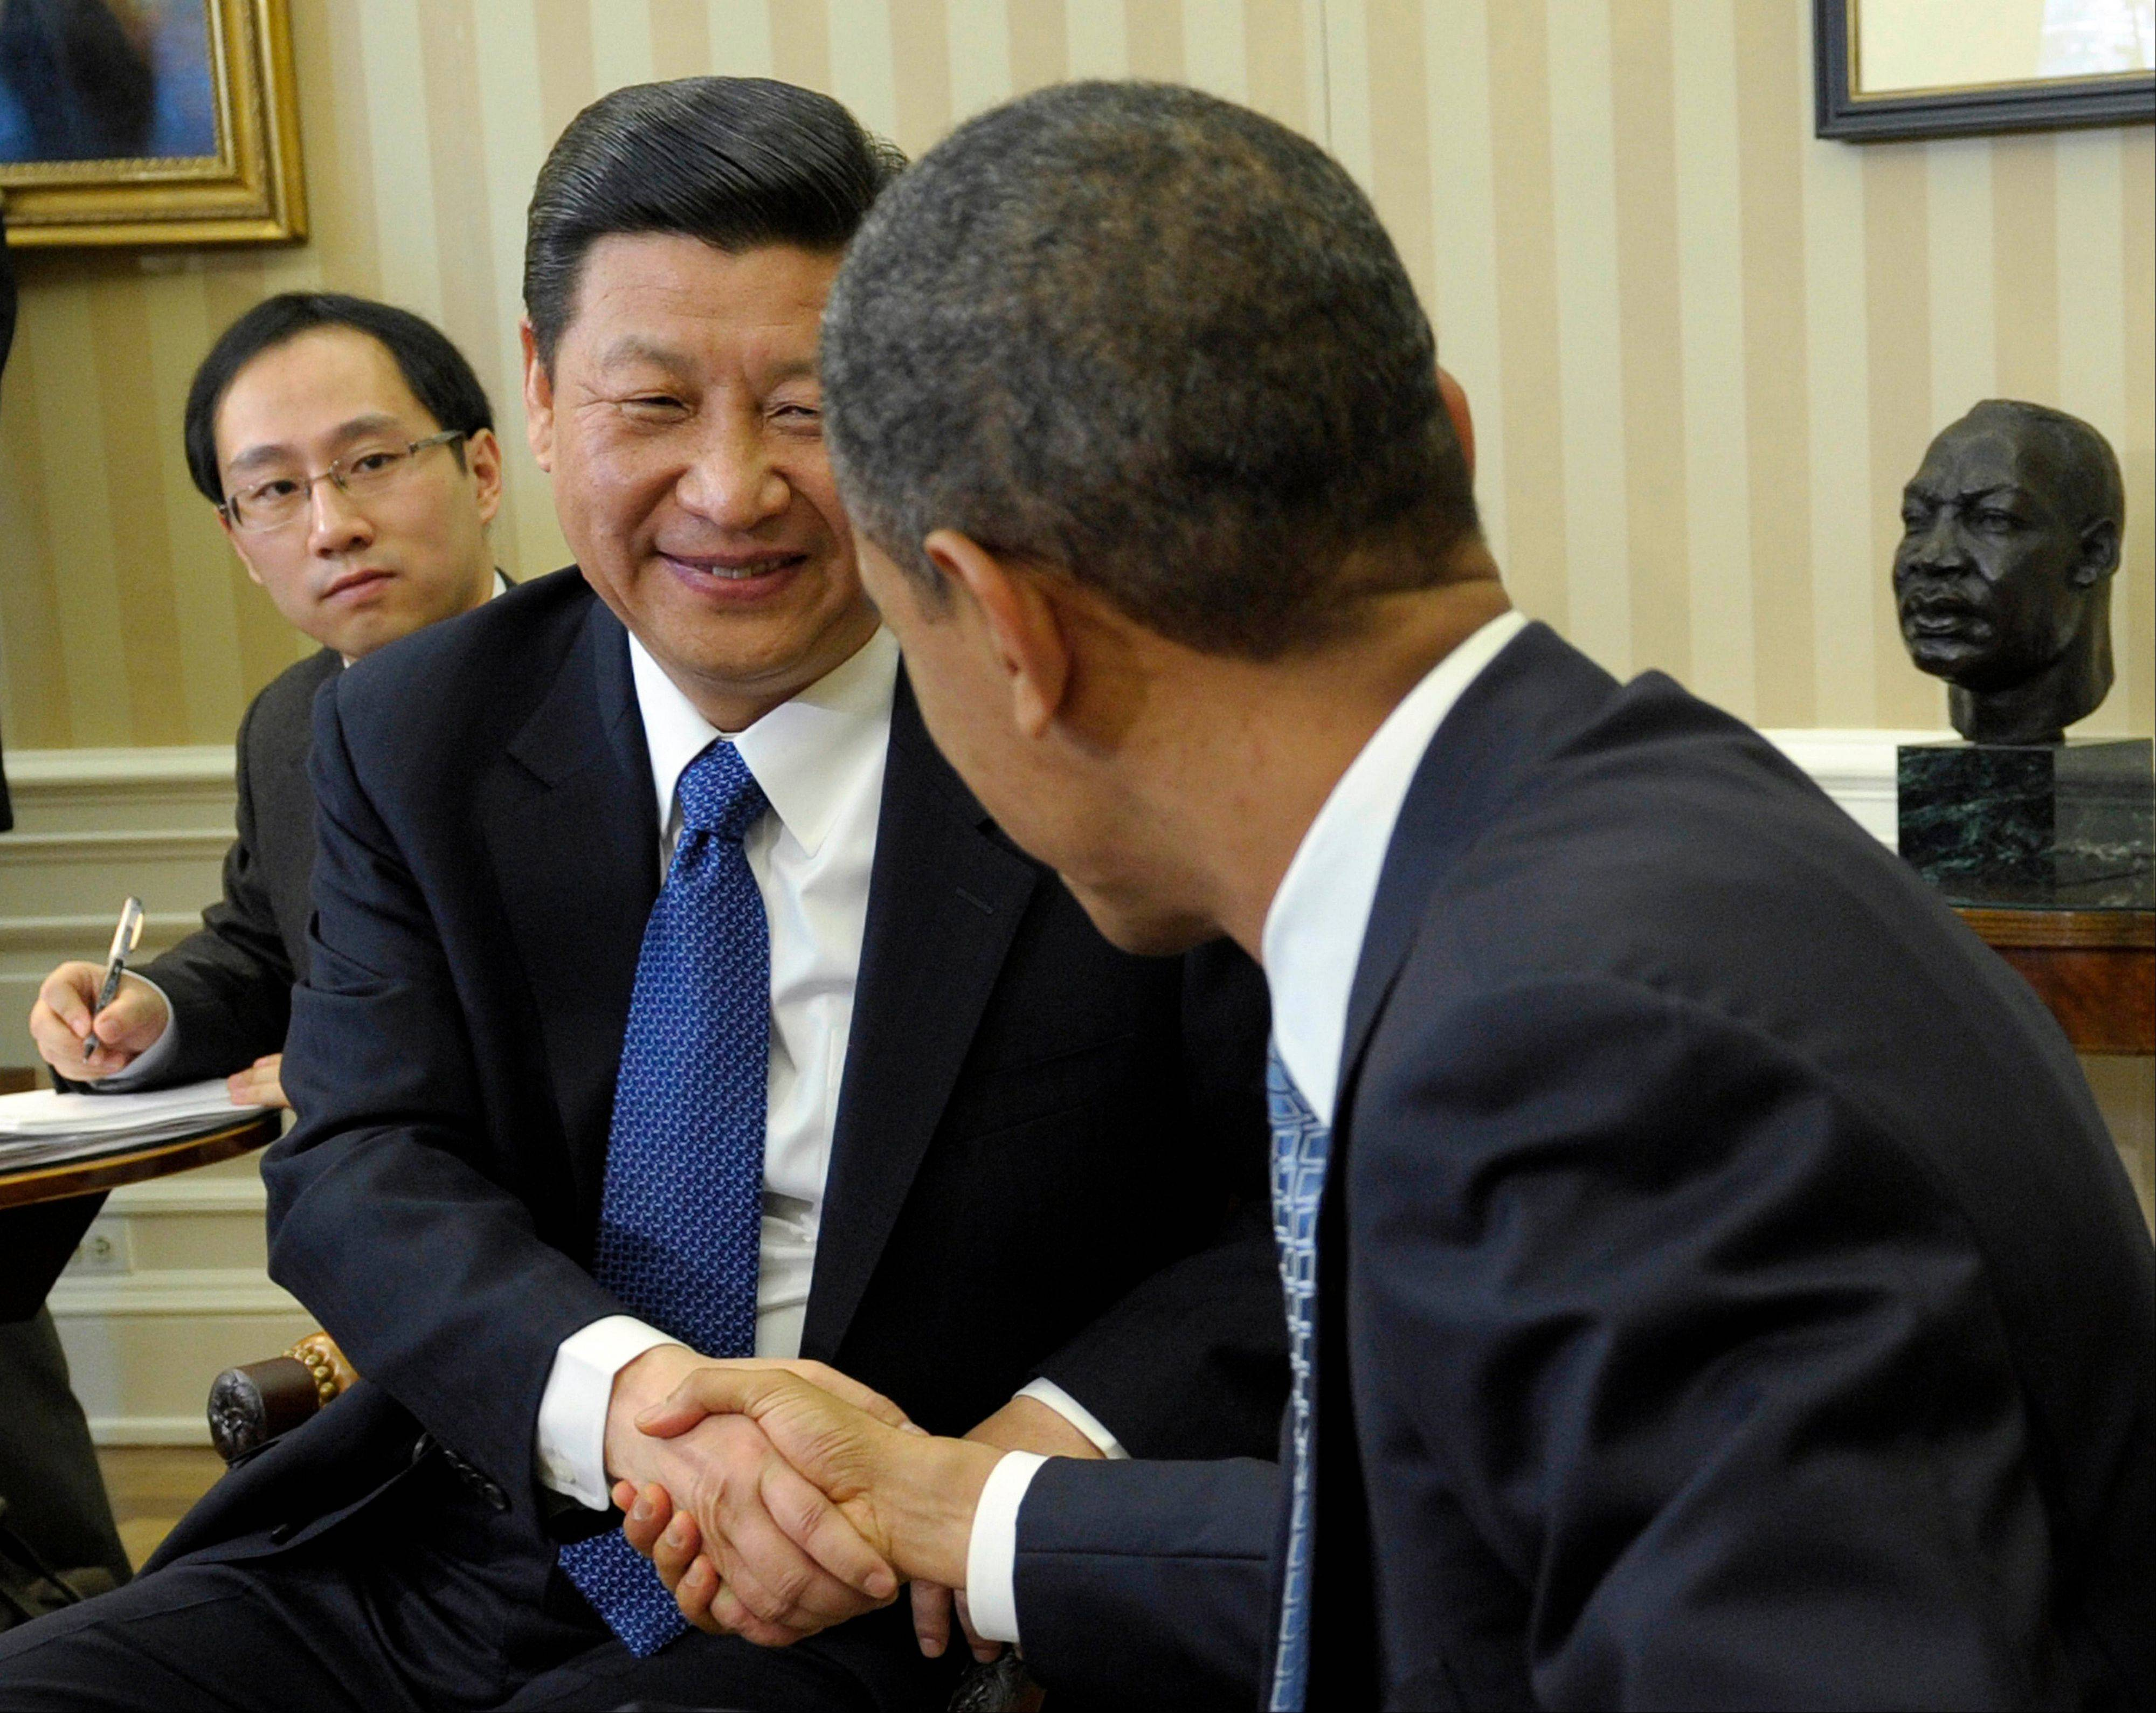 President Barack Obama and Chinese Vice President Xi Jinping, left, visit at the White House Feb. 14, 2012. When Obama meets Jinping again this week, he will be visiting with China's president -- and cybersecurity will be high among issues that will be raised.